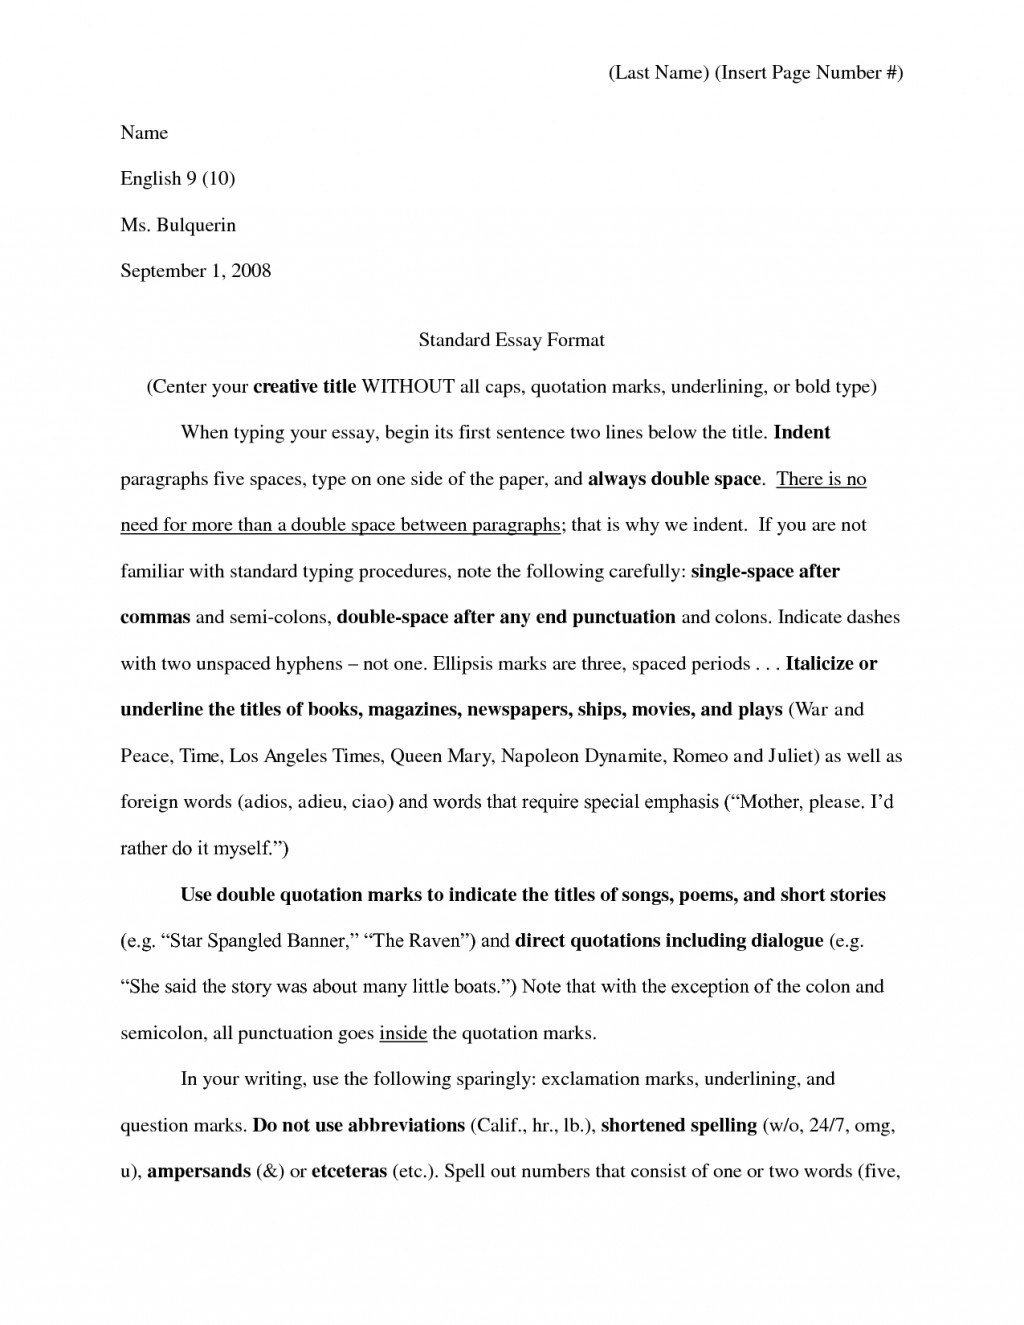 004 Standard Essay Format Example Impressive For College Apa Essay/report Ielts Large